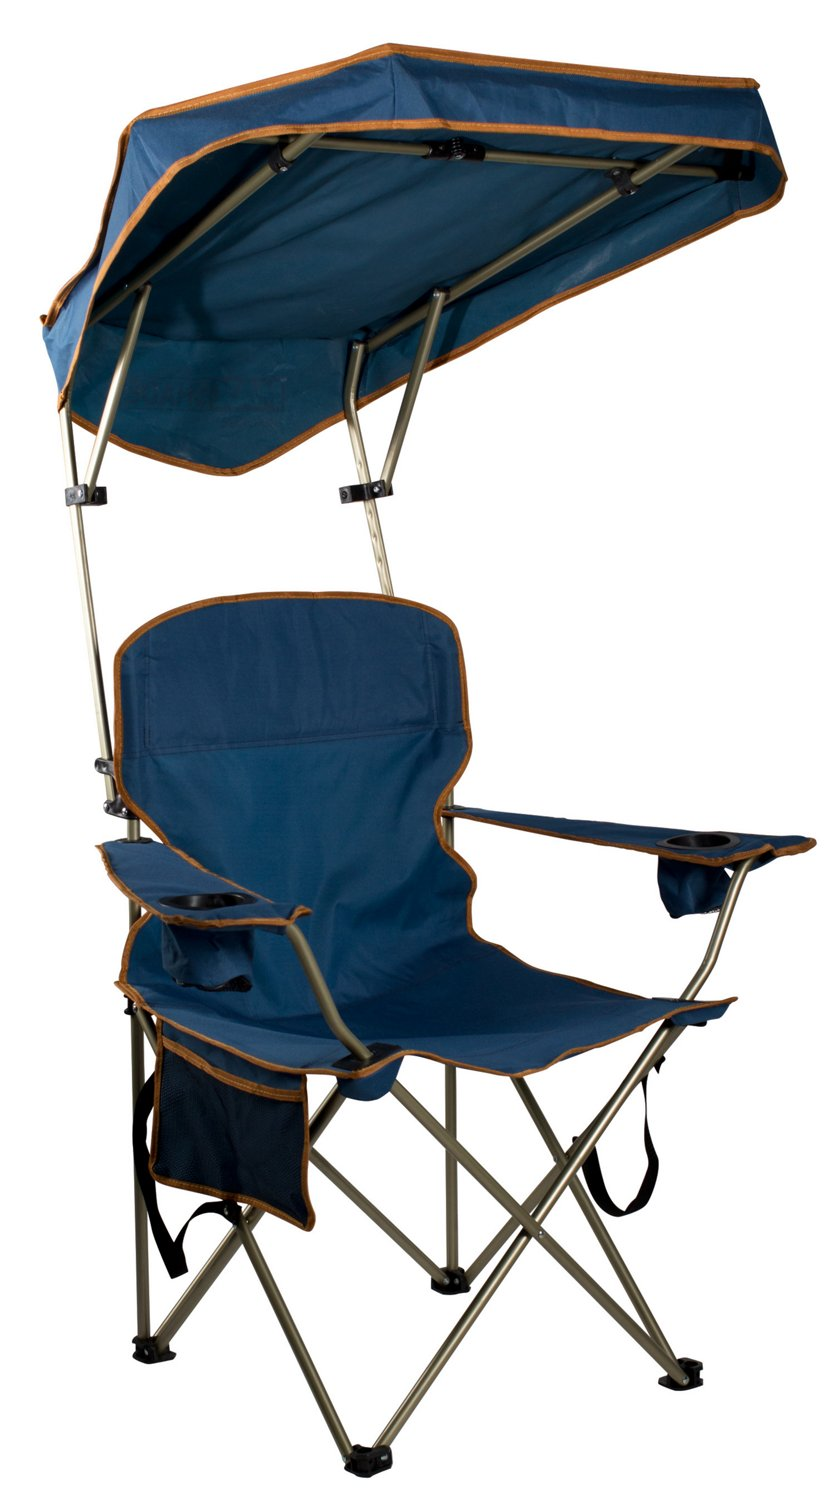 Marvelous Quik Shade Max Shade Adjustable Canopy Folding Camping Chair Machost Co Dining Chair Design Ideas Machostcouk